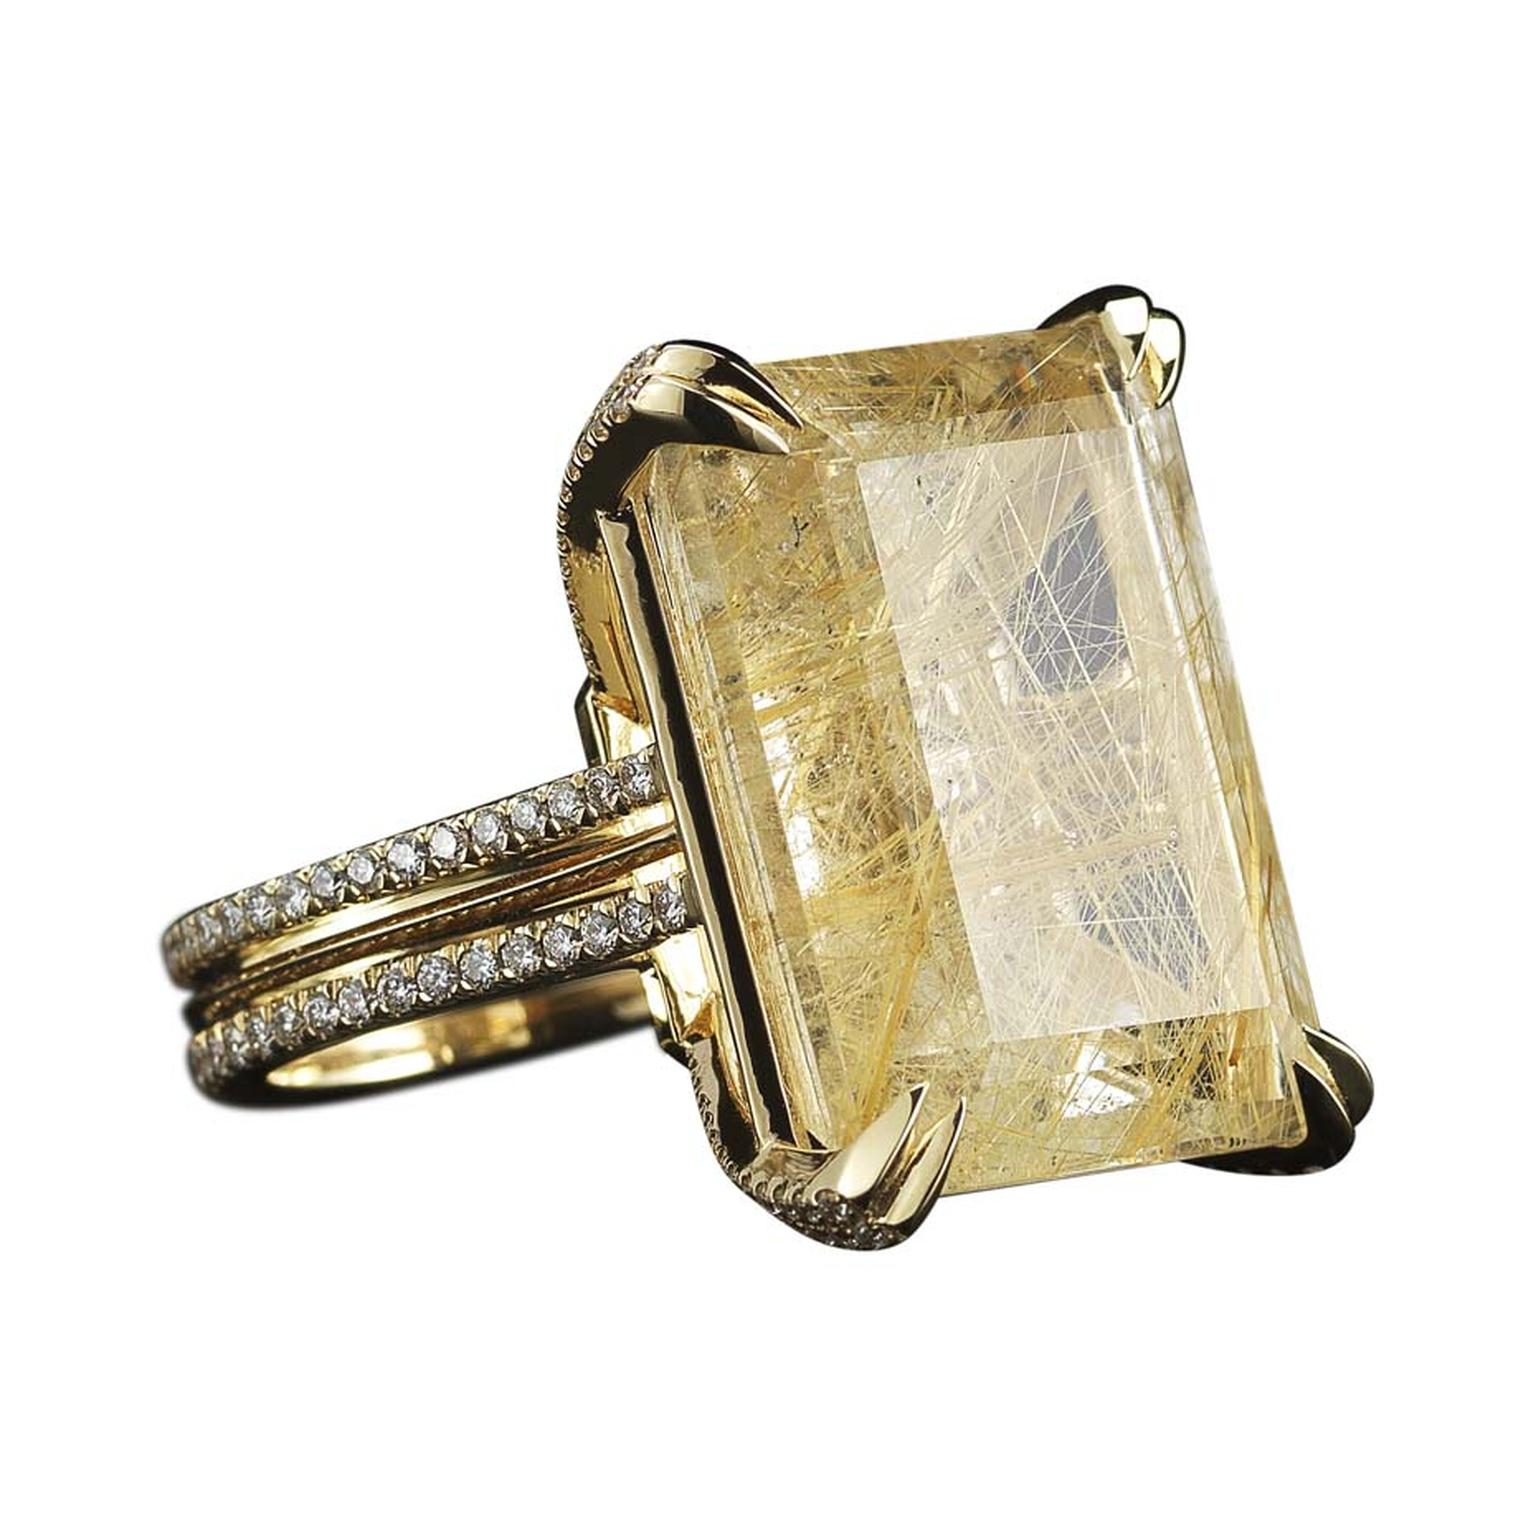 One-of-a-kind Alexandra Mor rutilated quarz and diamond ring in yellow gold